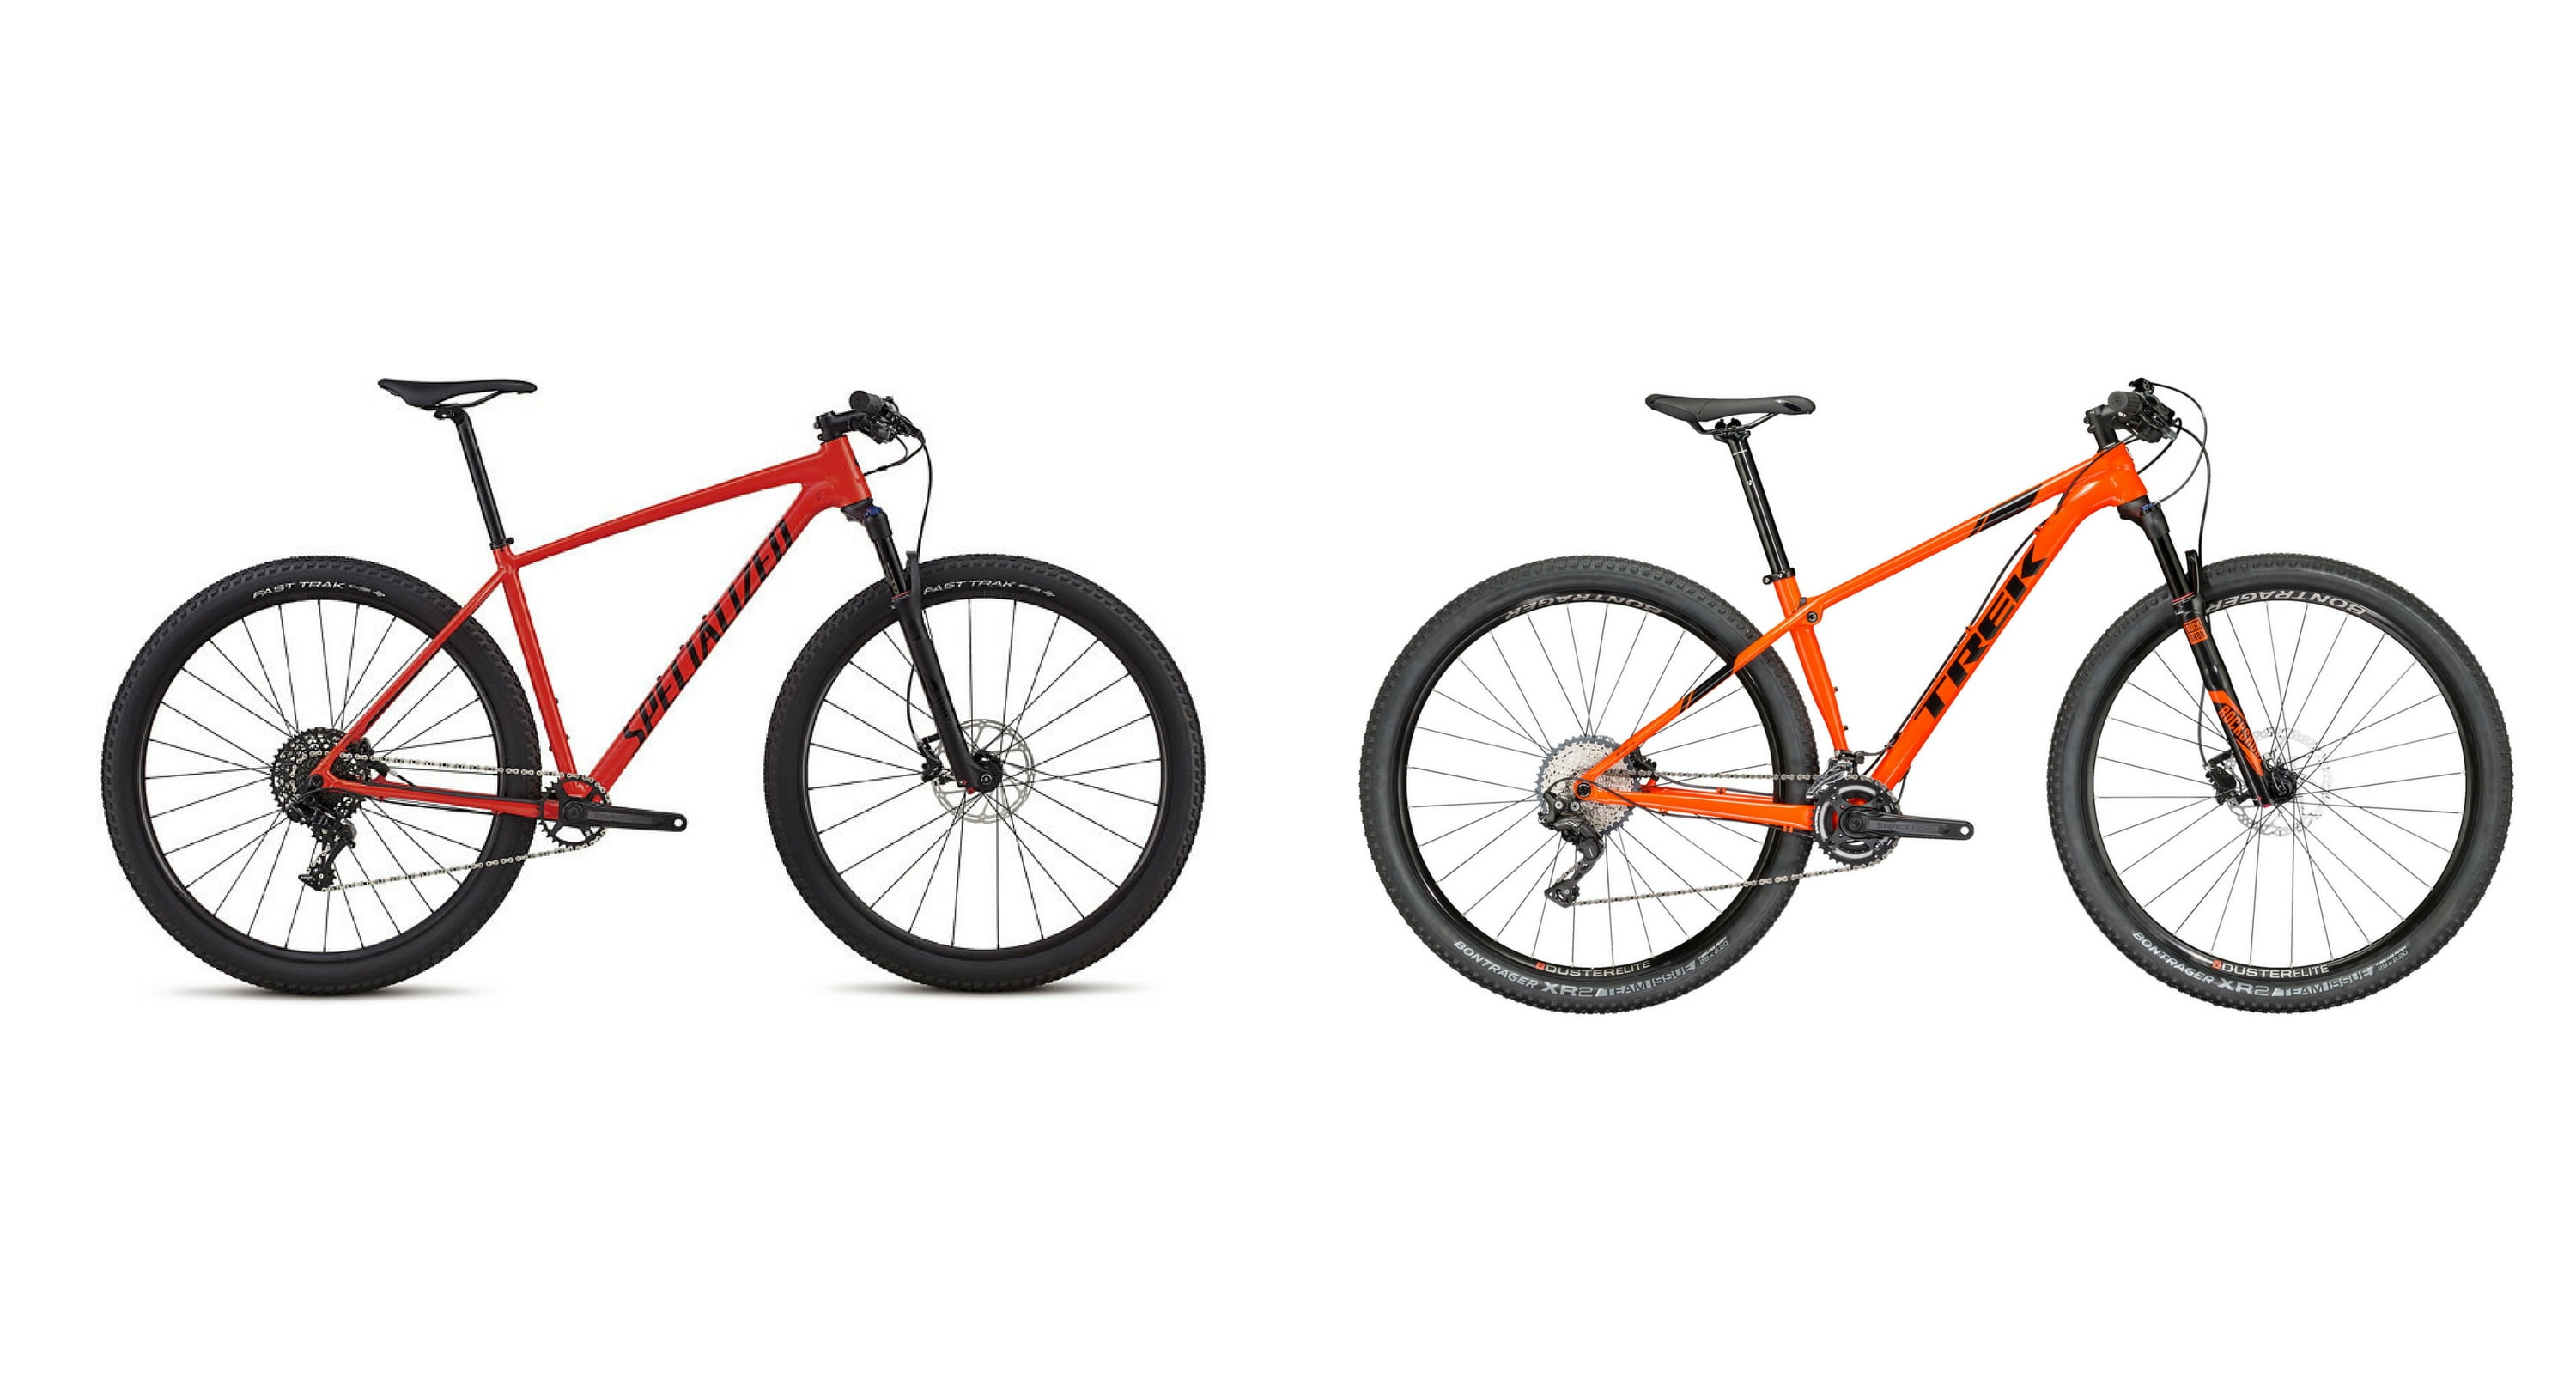 2018 Specialized Chisel Vs 2018 Trek Procaliber Alloy Everyday Mtb